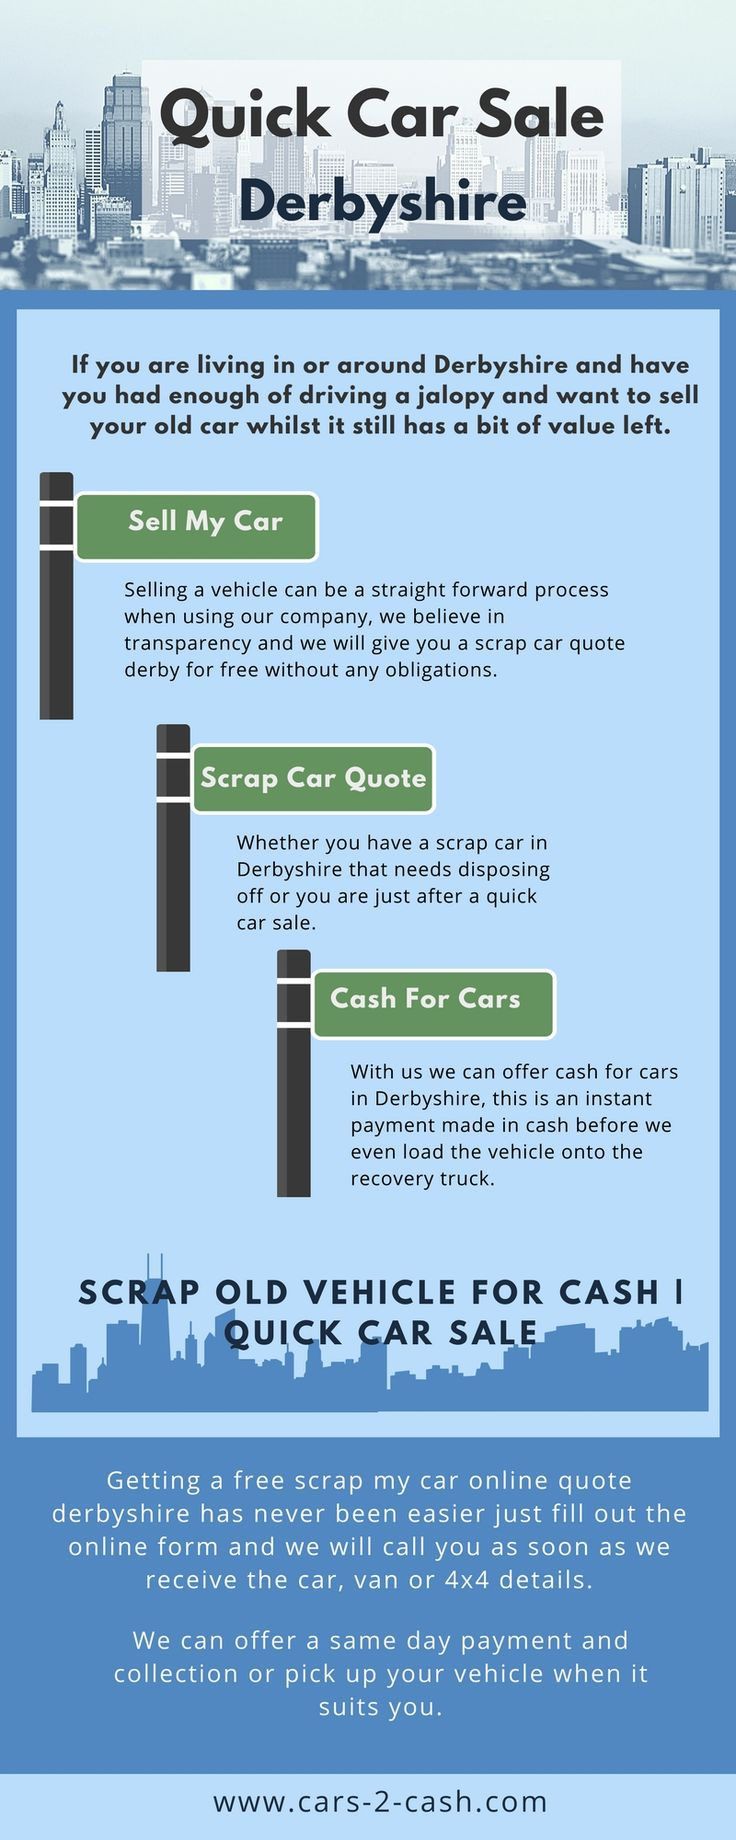 Junk Cars For Cash Nj >> Cash For Cars Online Quote | QUOTES OF THE DAY